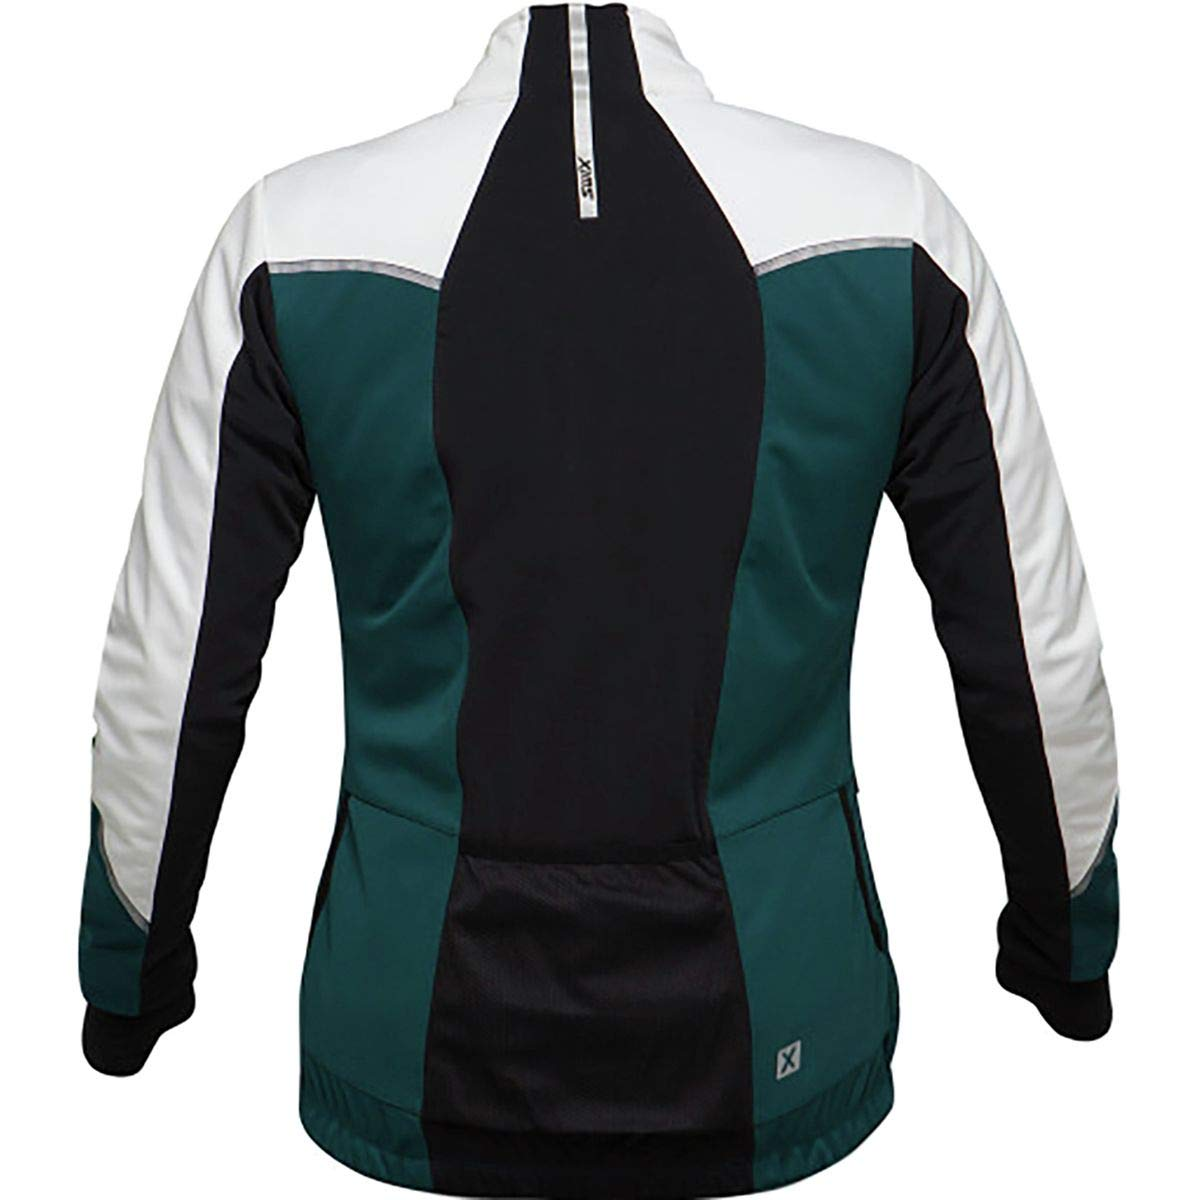 Amazon.com: Swix Delda Light Softshell - Chaqueta para mujer ...